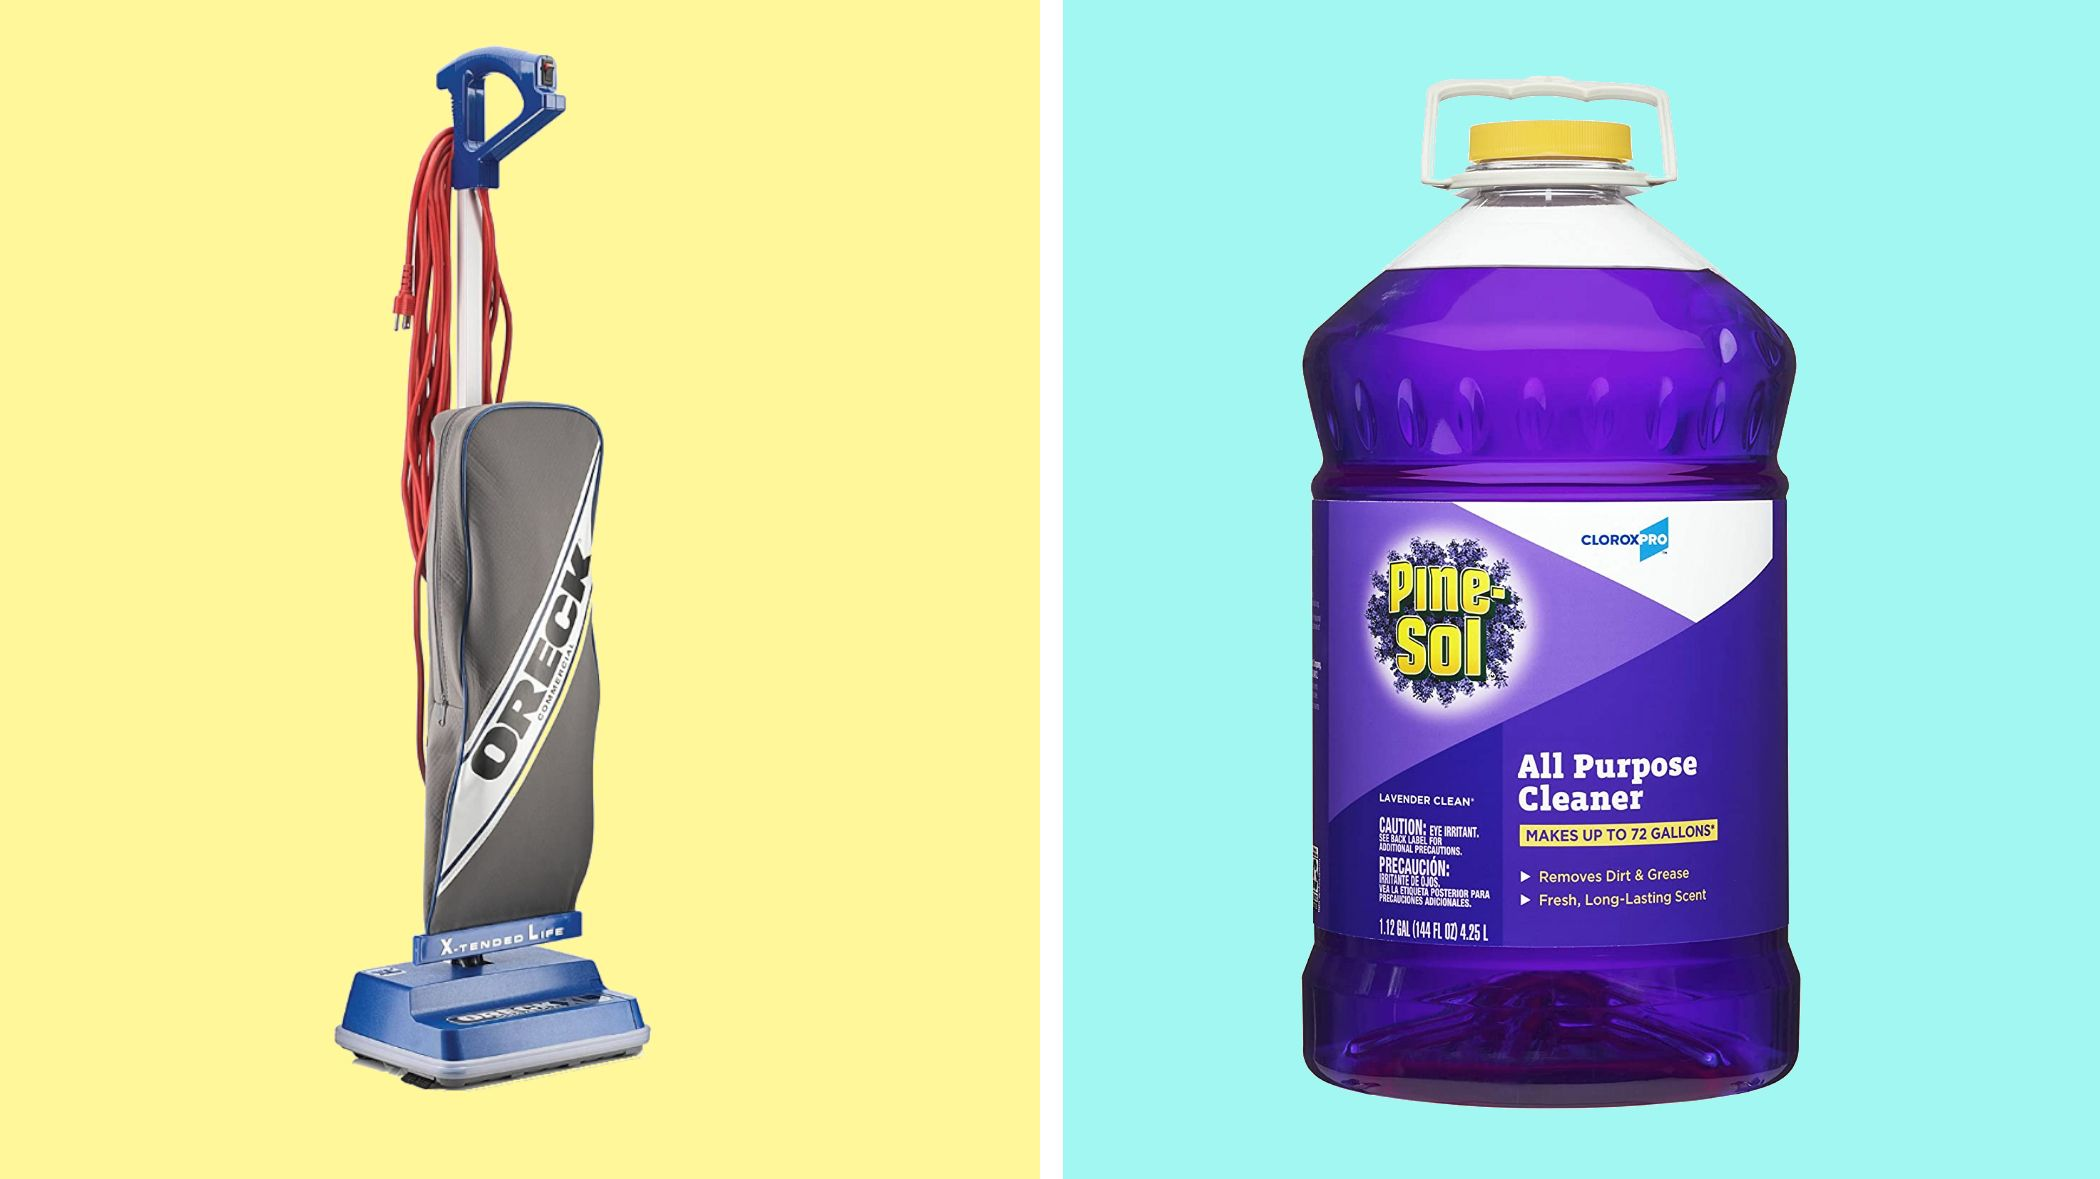 Freshen Up Your Home While Saving Money With Deals From Amazon's Spring Cleaning Store